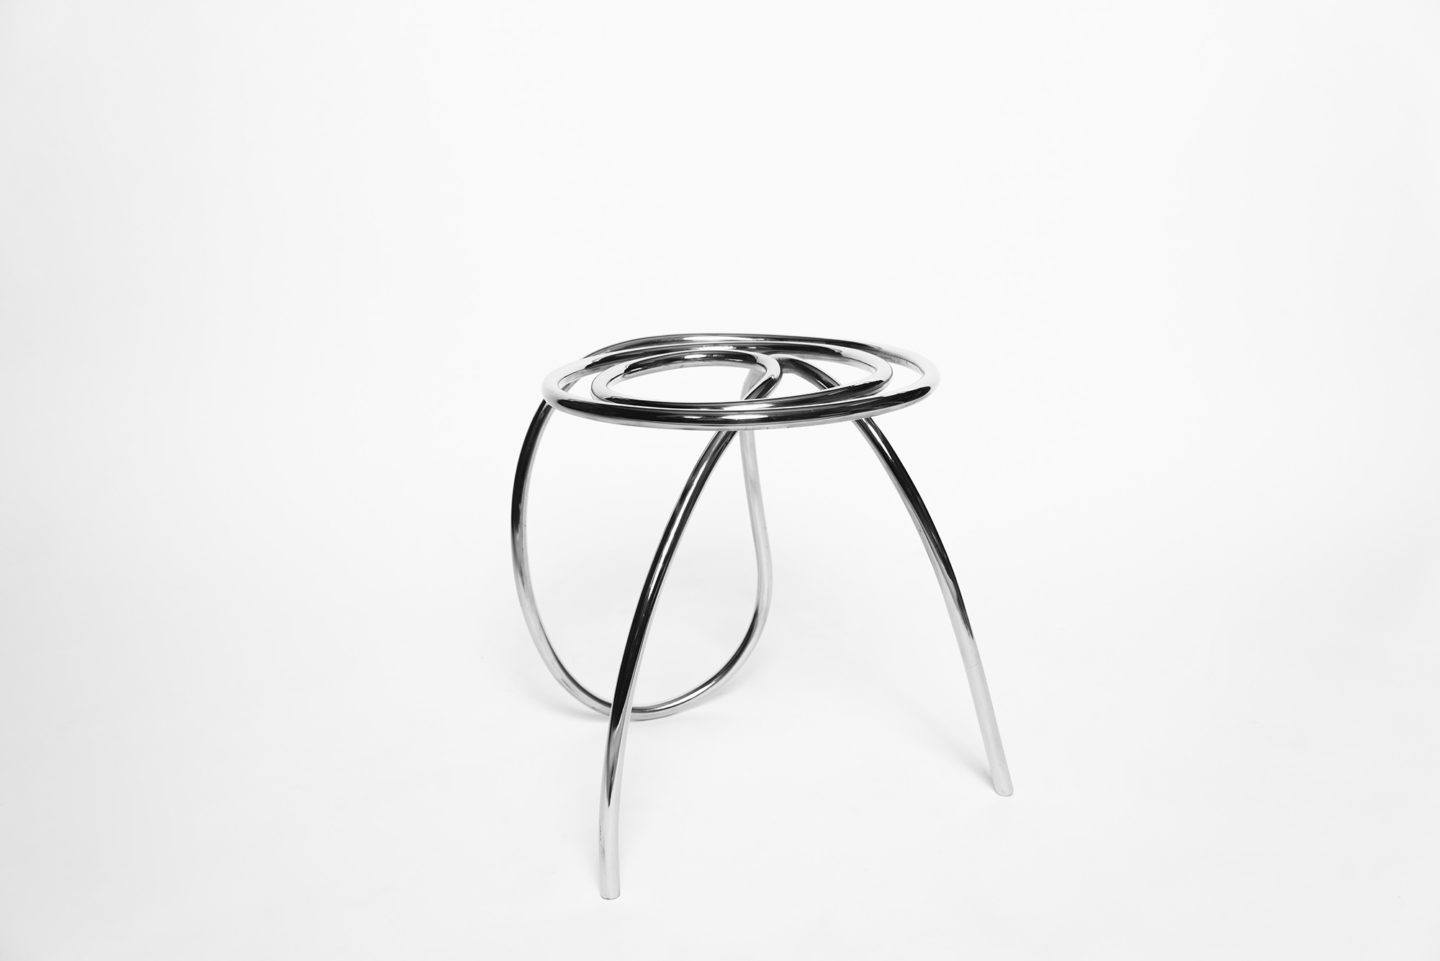 IGNANT-Design-Unusual-Chairs-8